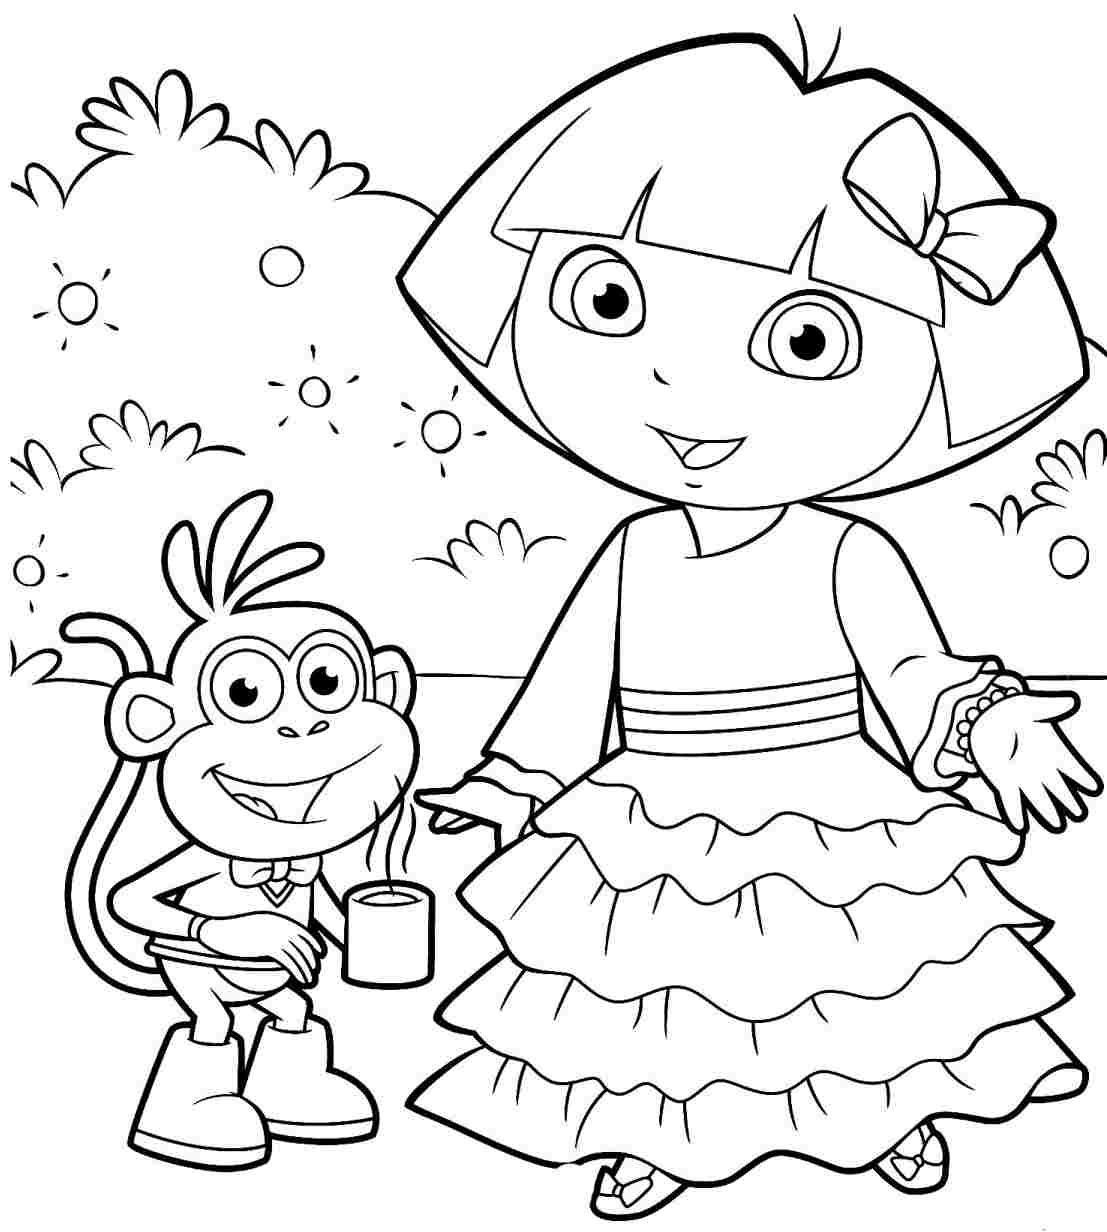 dora to color dora coloring pages only coloring pages dora color to